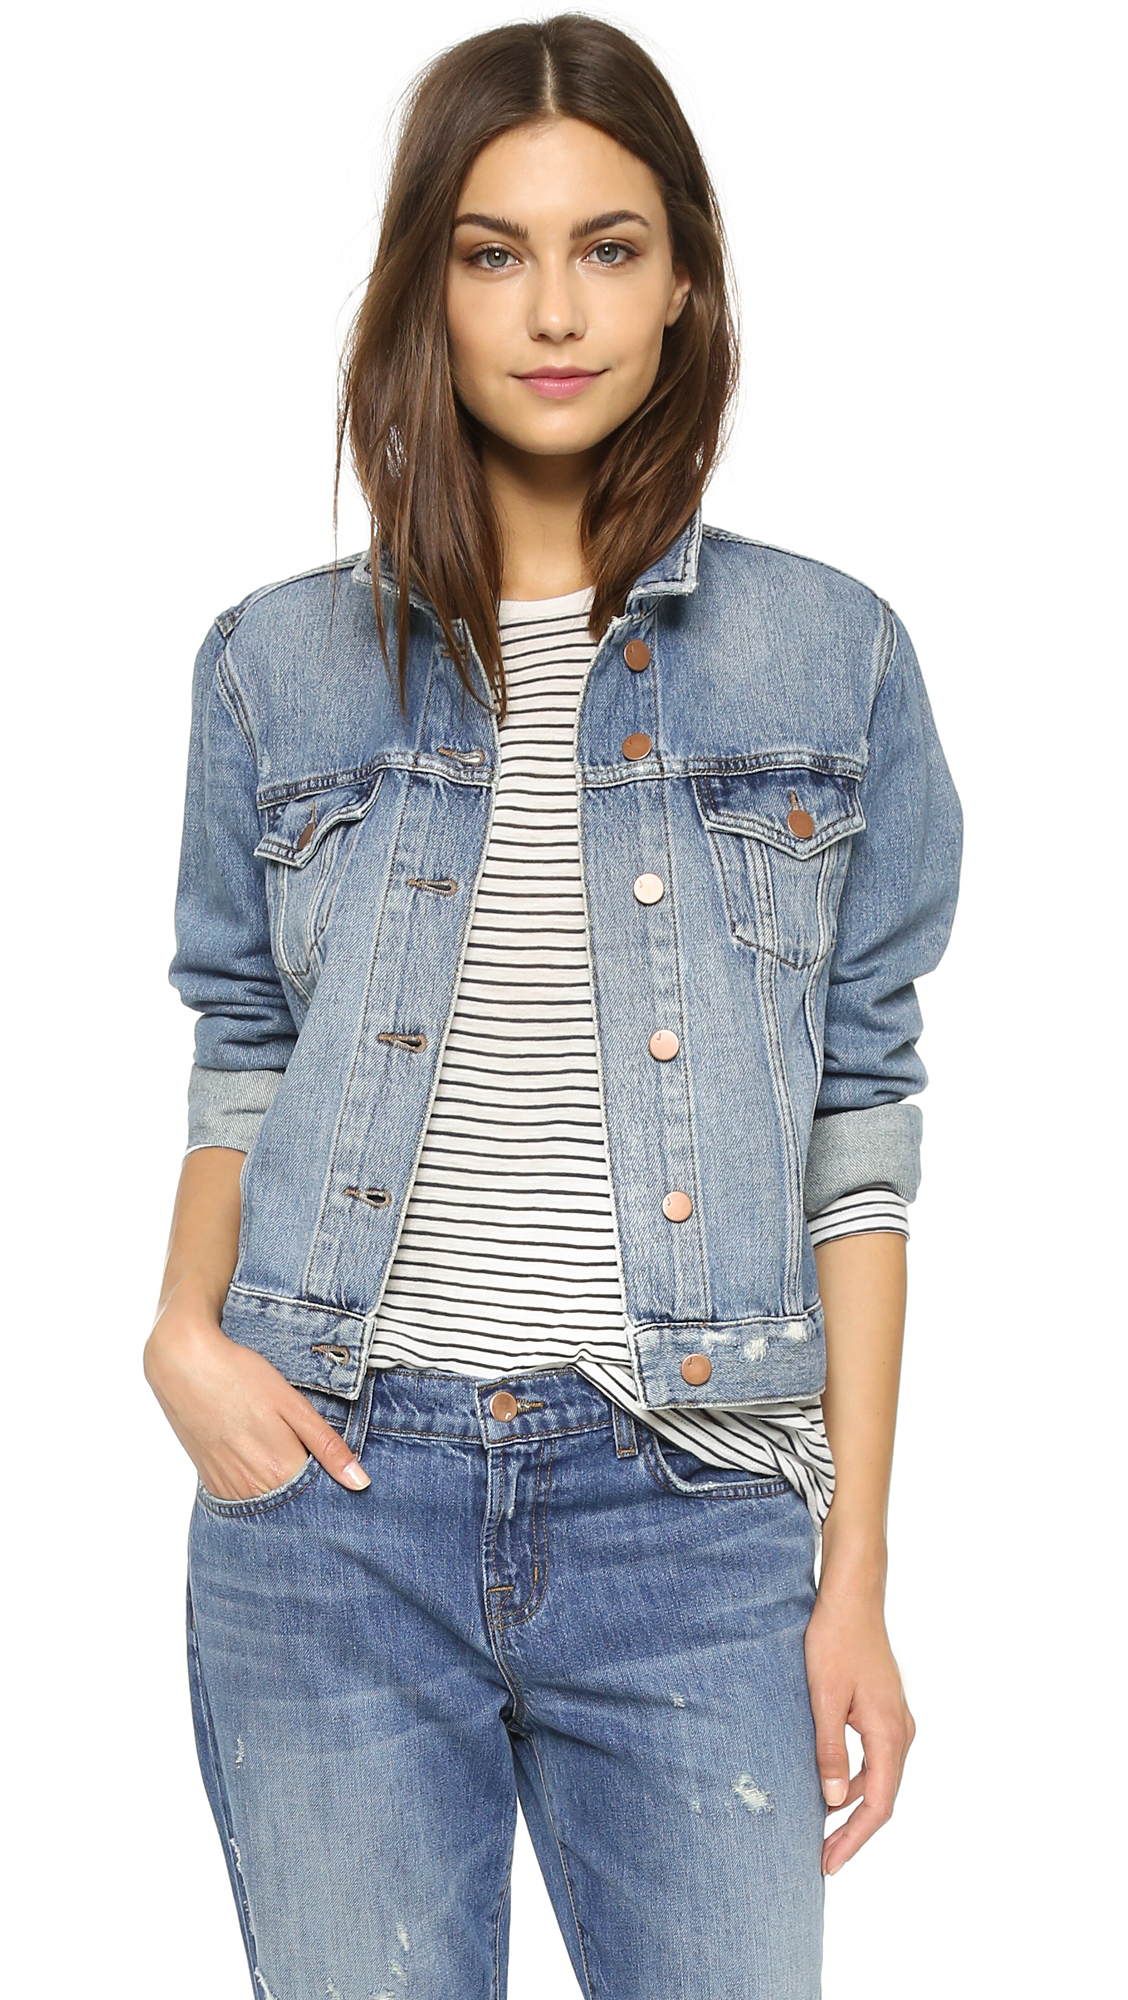 2016 Kot Ceket Modelleri ve Kombinleri 2016-Denim-Jackets-and-Coats-For-Women-6